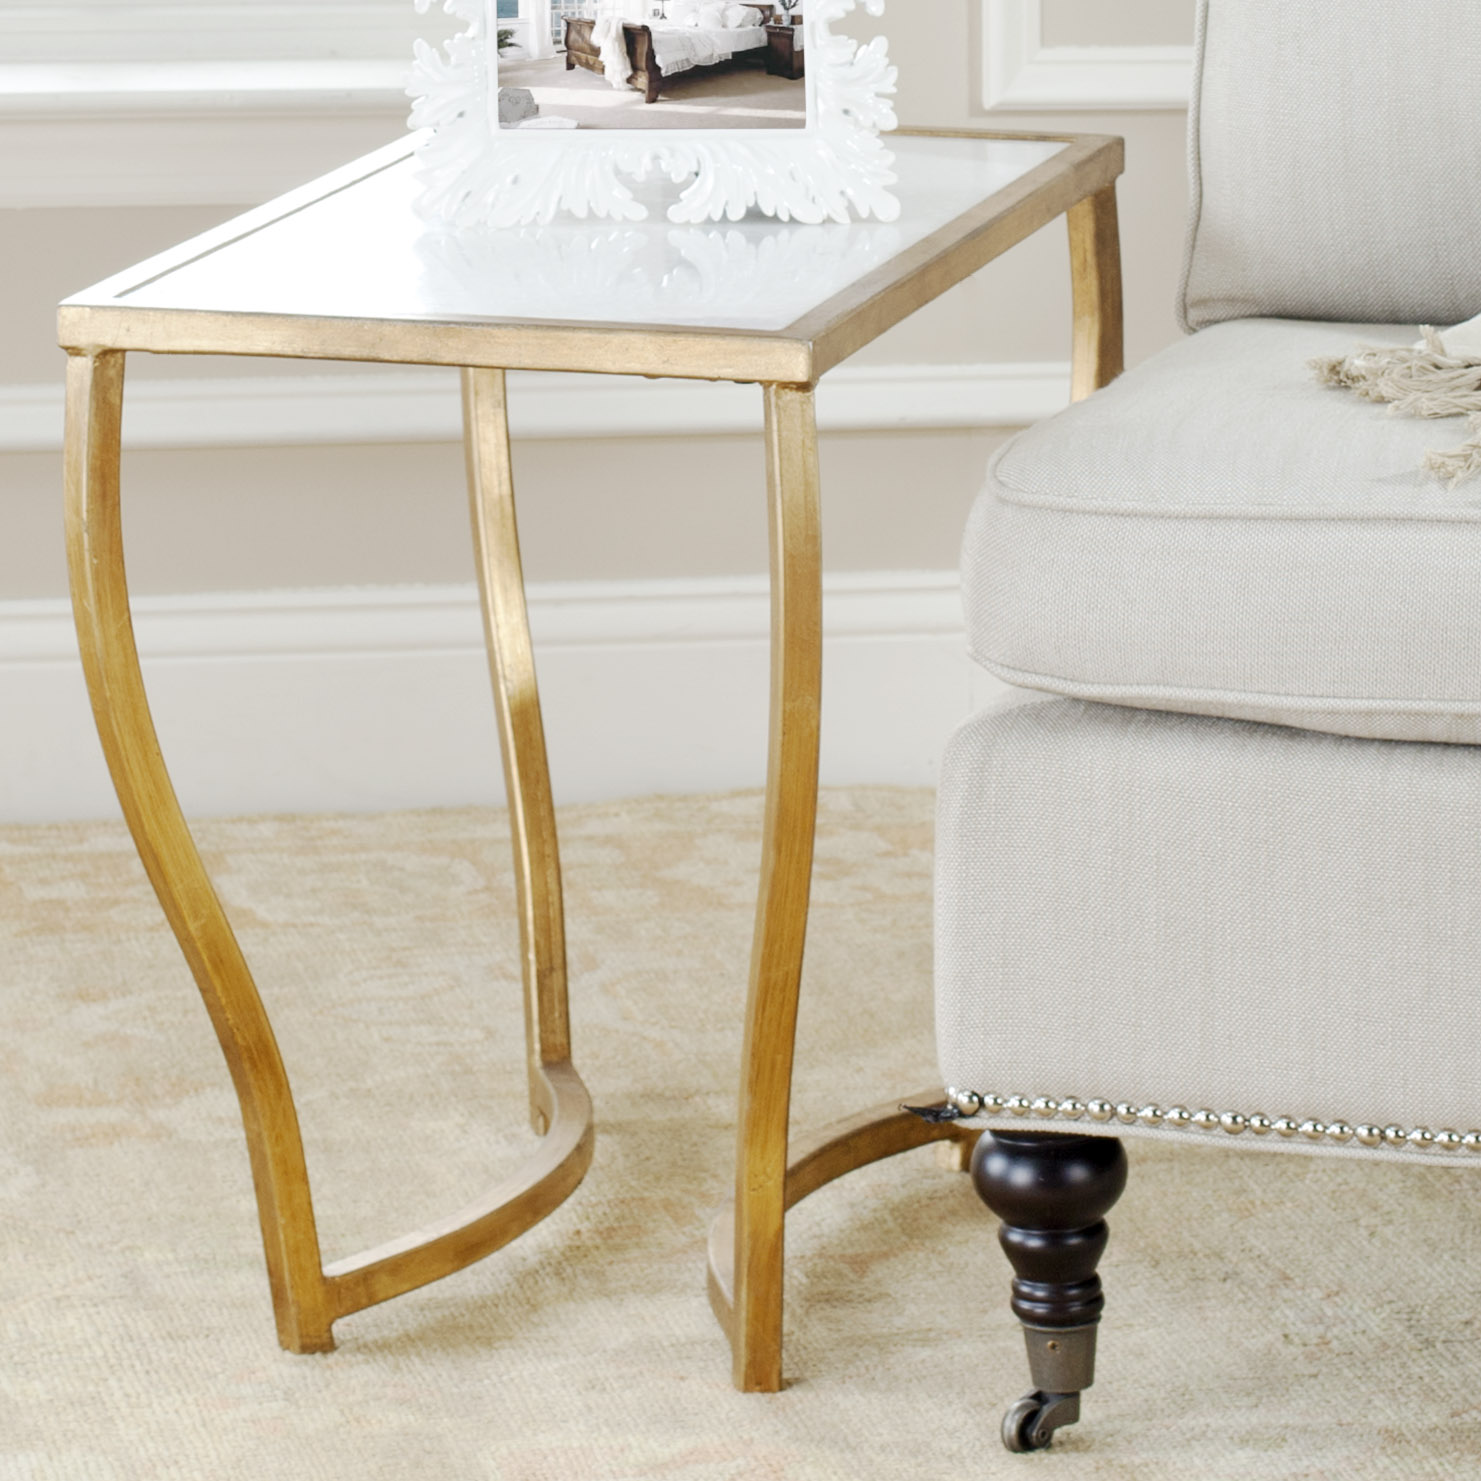 safavieh rex glass top gold foil accent table prod small contemporary end tables dresser target mirrored bedside lockers side design for drawing room entry gray pier one ashley